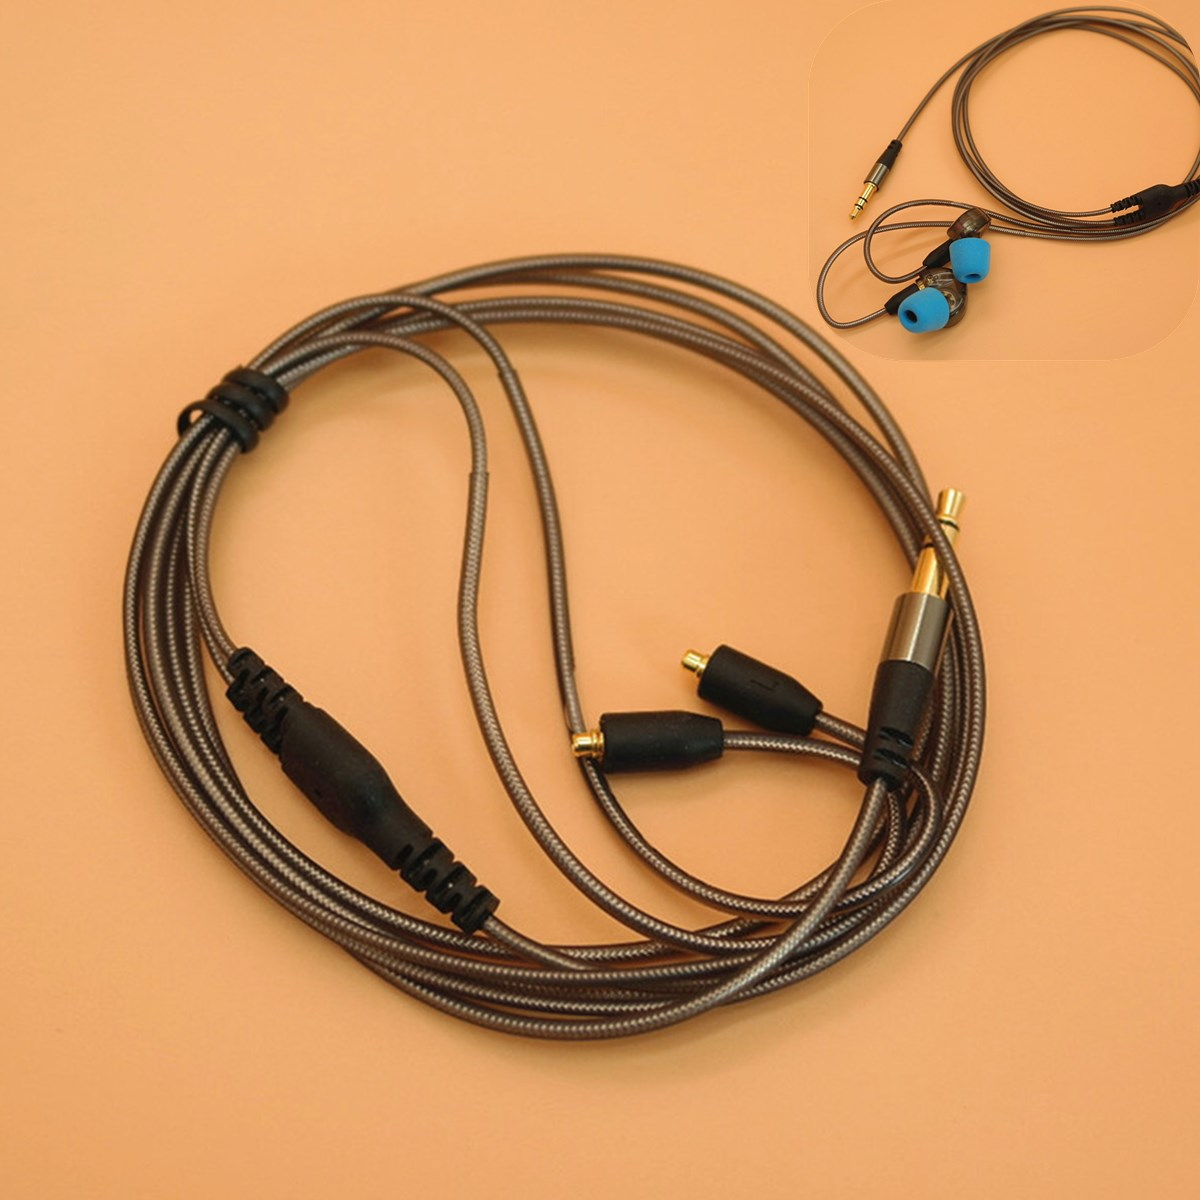 3.5mm Earphone Audio Cable for Shure/Headphone SE215 315 425 535 846 DIY Replacement Earphone 14 Cores